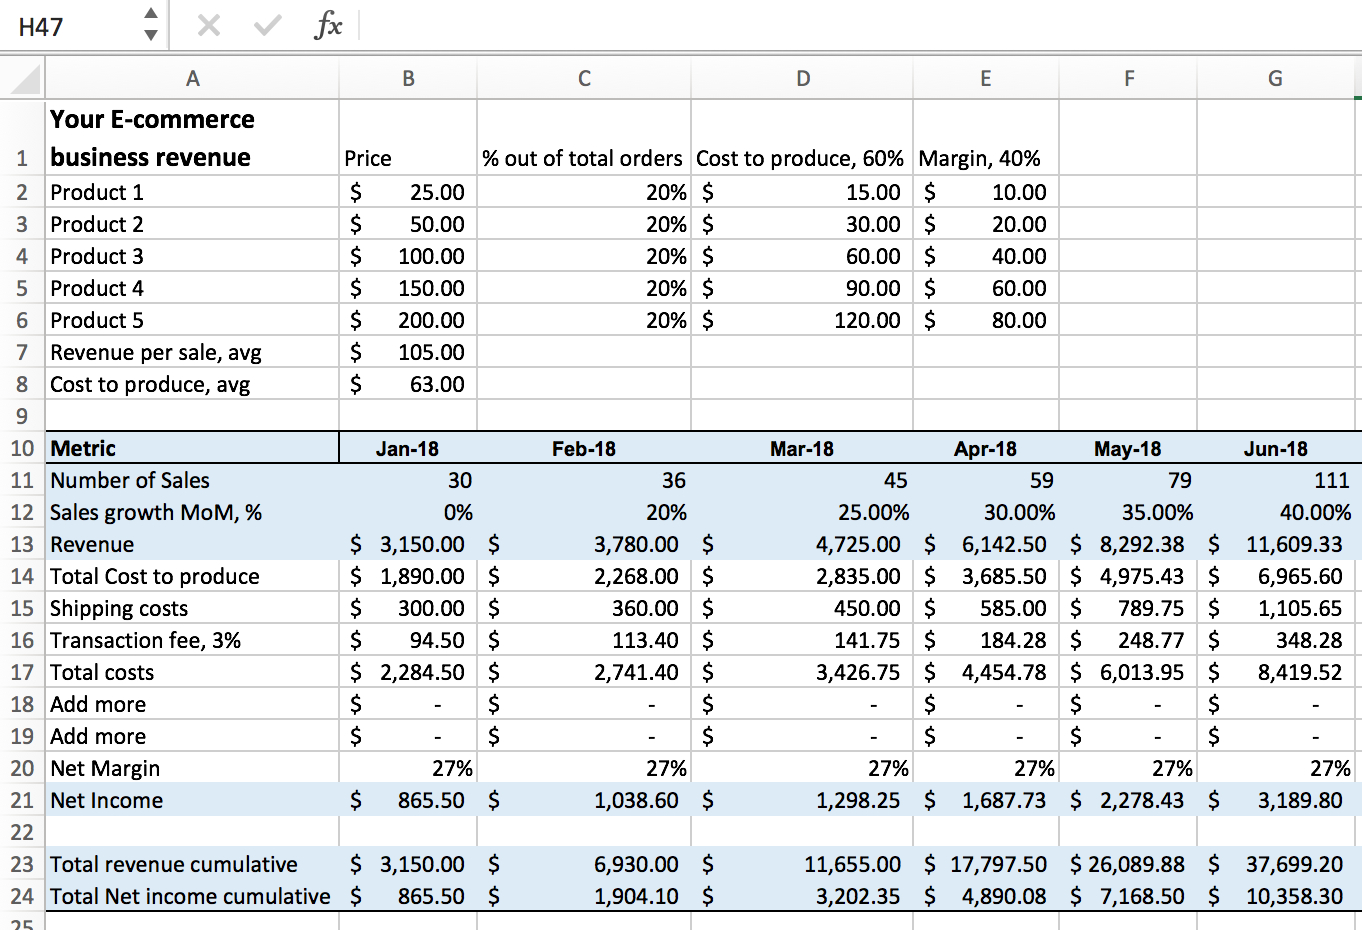 Production Tracking Spreadsheet Template Inside Excel For Startups: Simple Financial Models And Dashboards